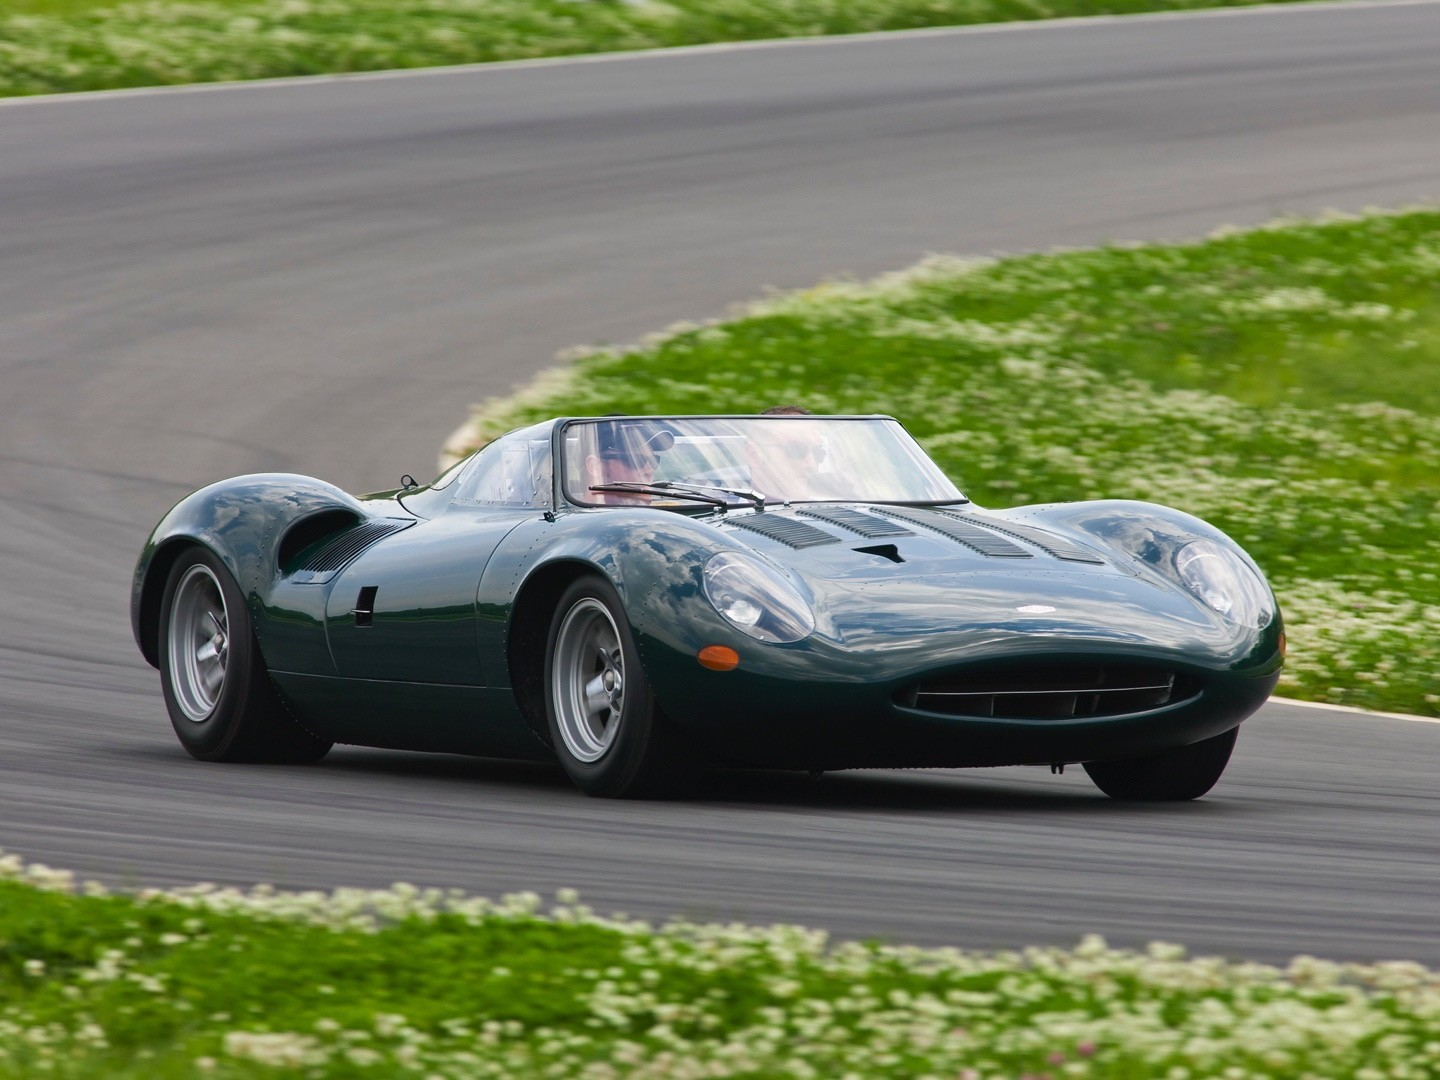 Jaguar XJ13 Prototype To Make Le Mans Debut 50 Years After